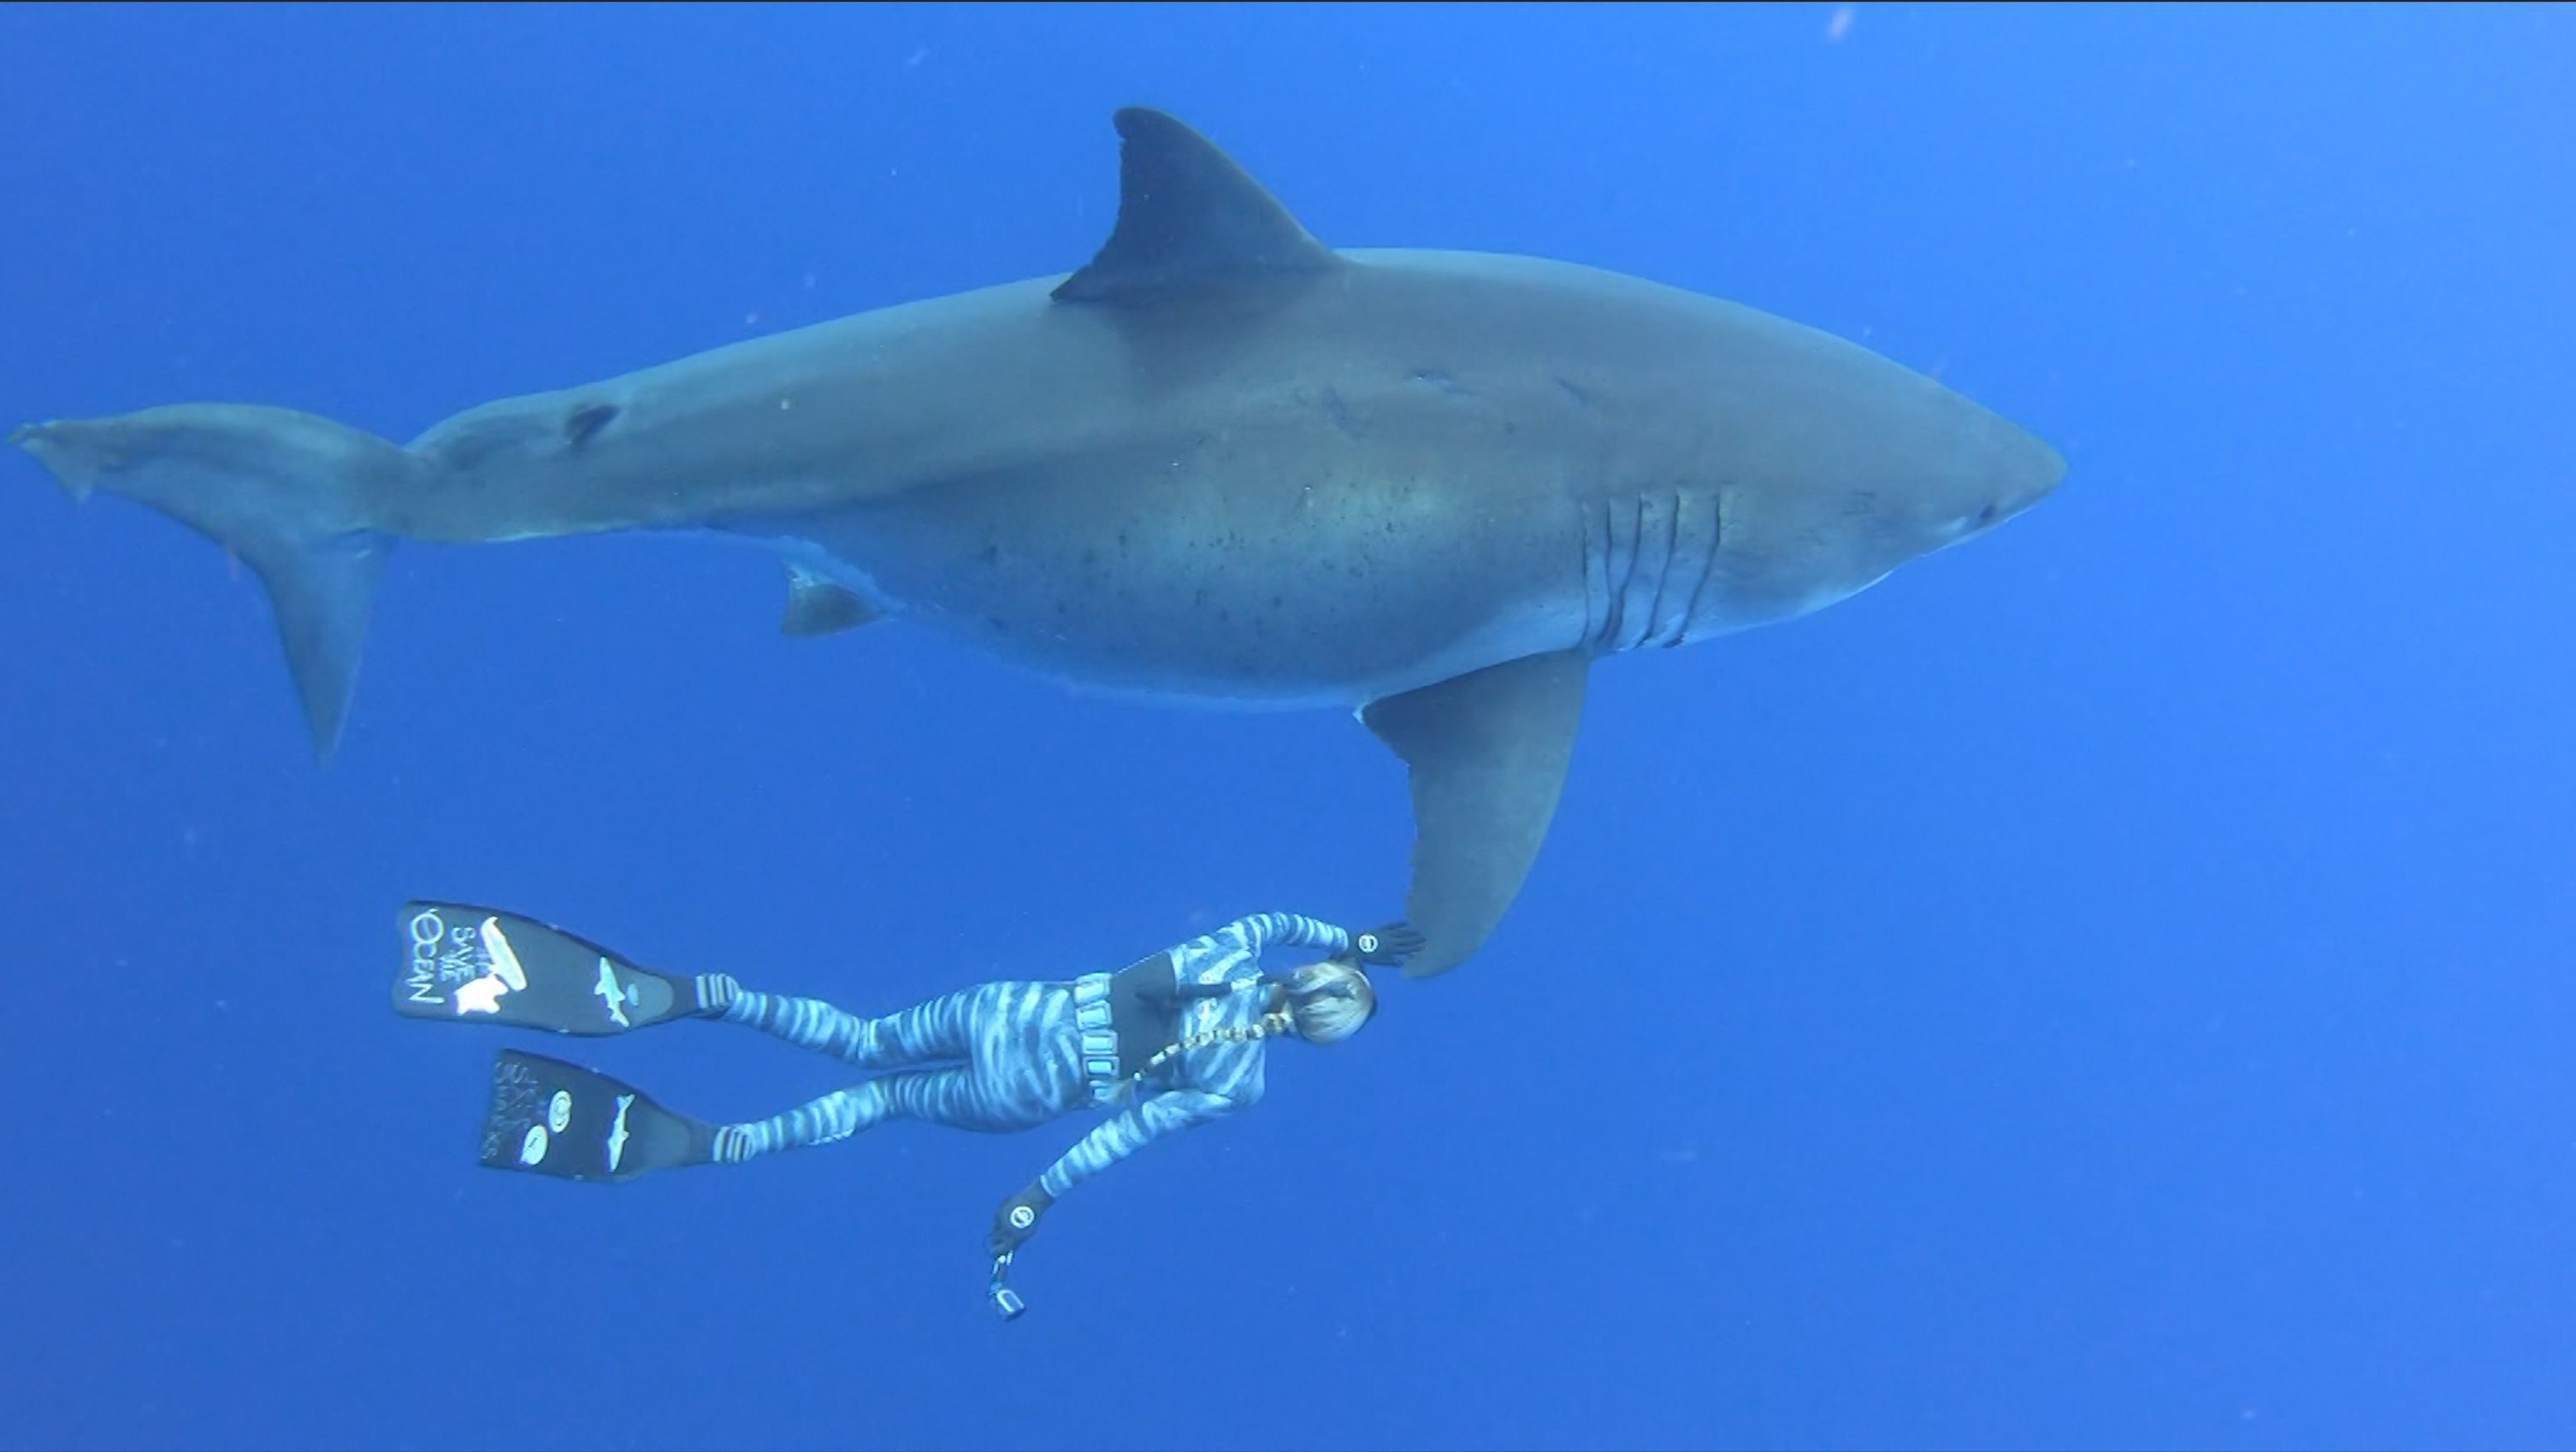 Divers swim with rare great white shark